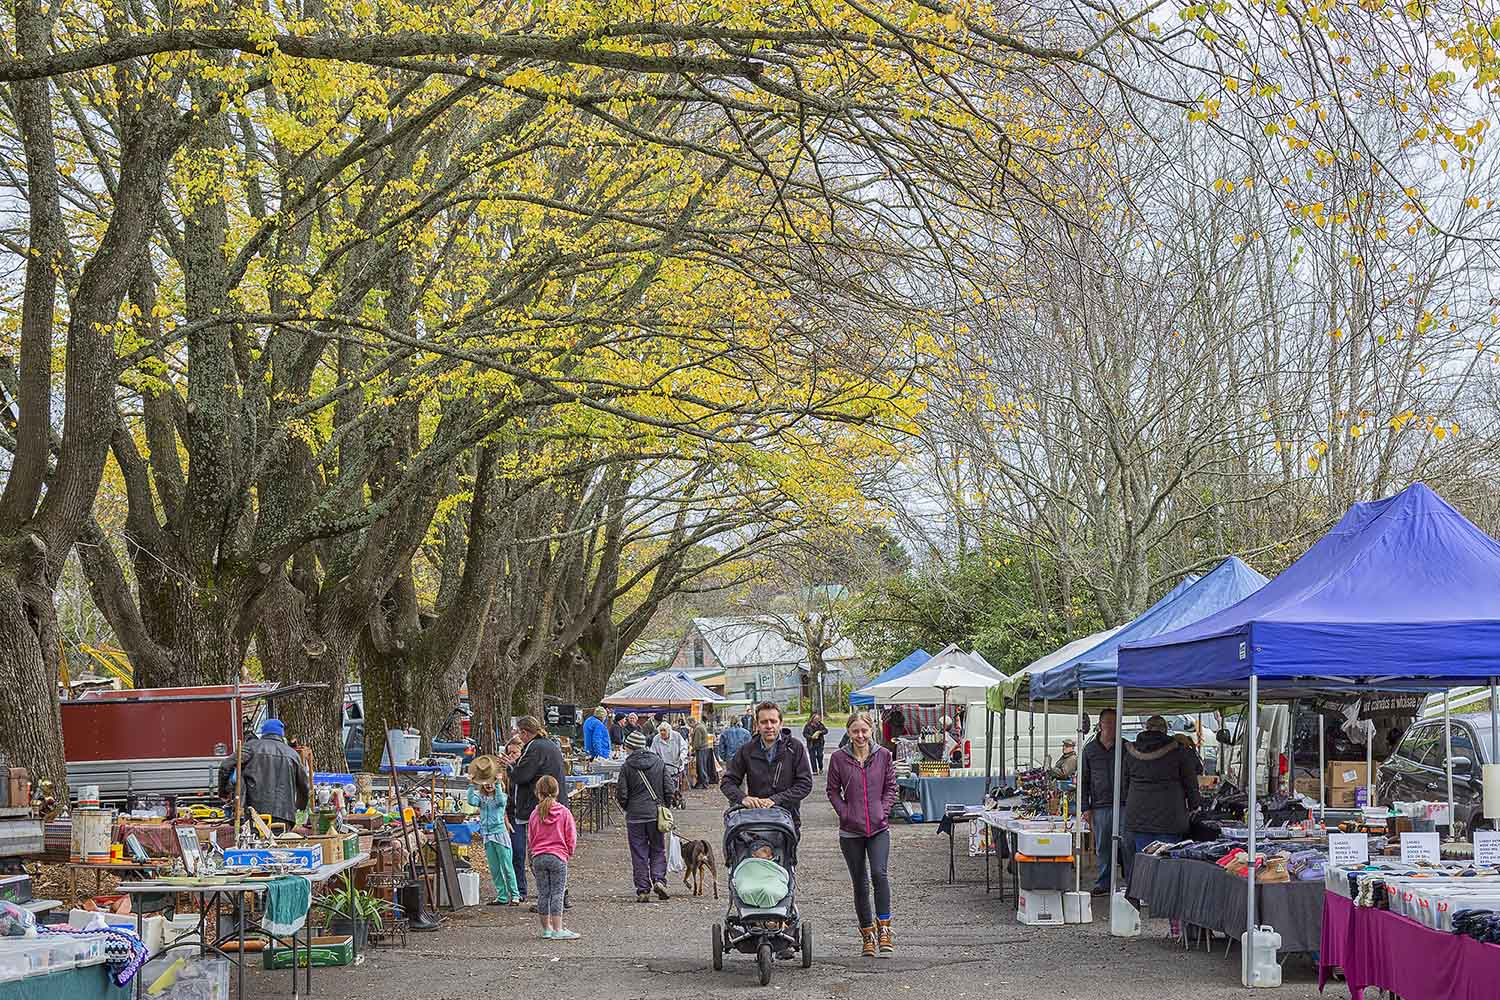 Locals and tourists enjoy the delights of the Daylesford Sunday market